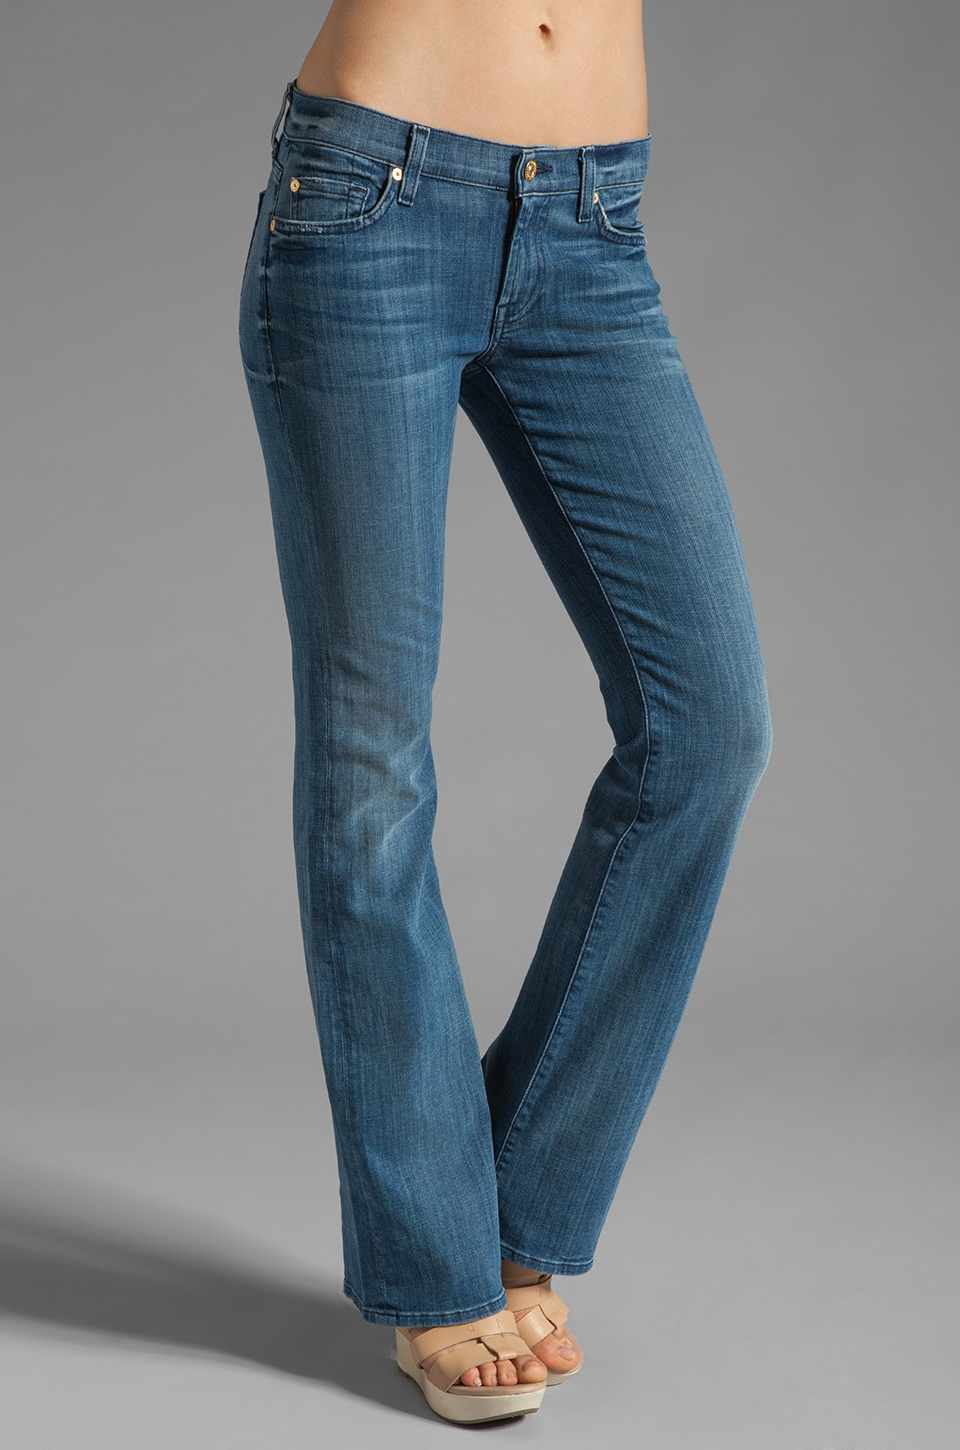 7 For All Mankind Bootcut in Natural Water Blue